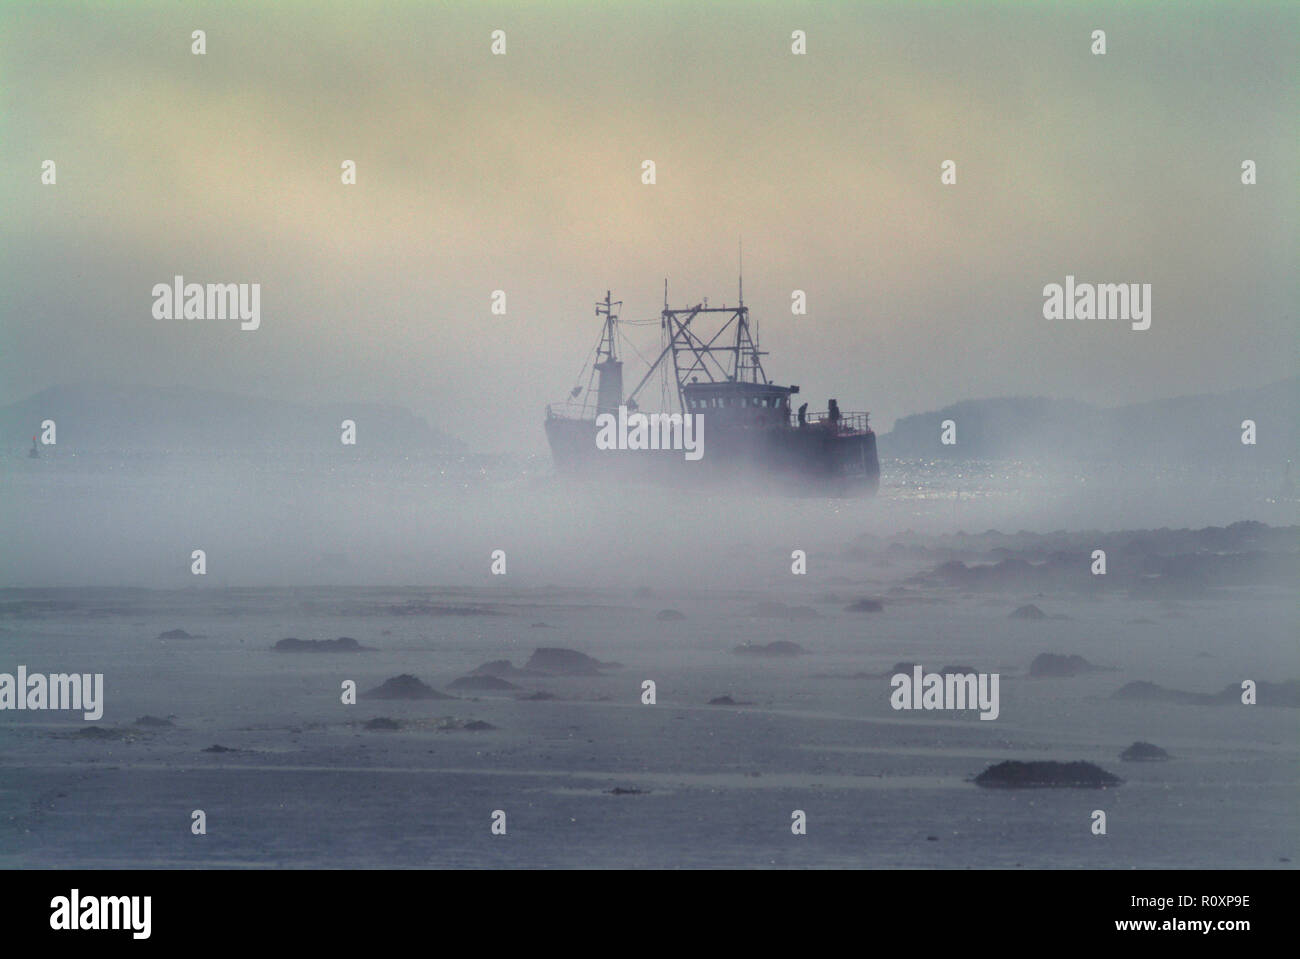 A scallop dredger navigates the channel up the River Dee to Kirkcudbrifght Harbour in thick fog. The tide is low and the channel is narrow and shallow - Stock Image